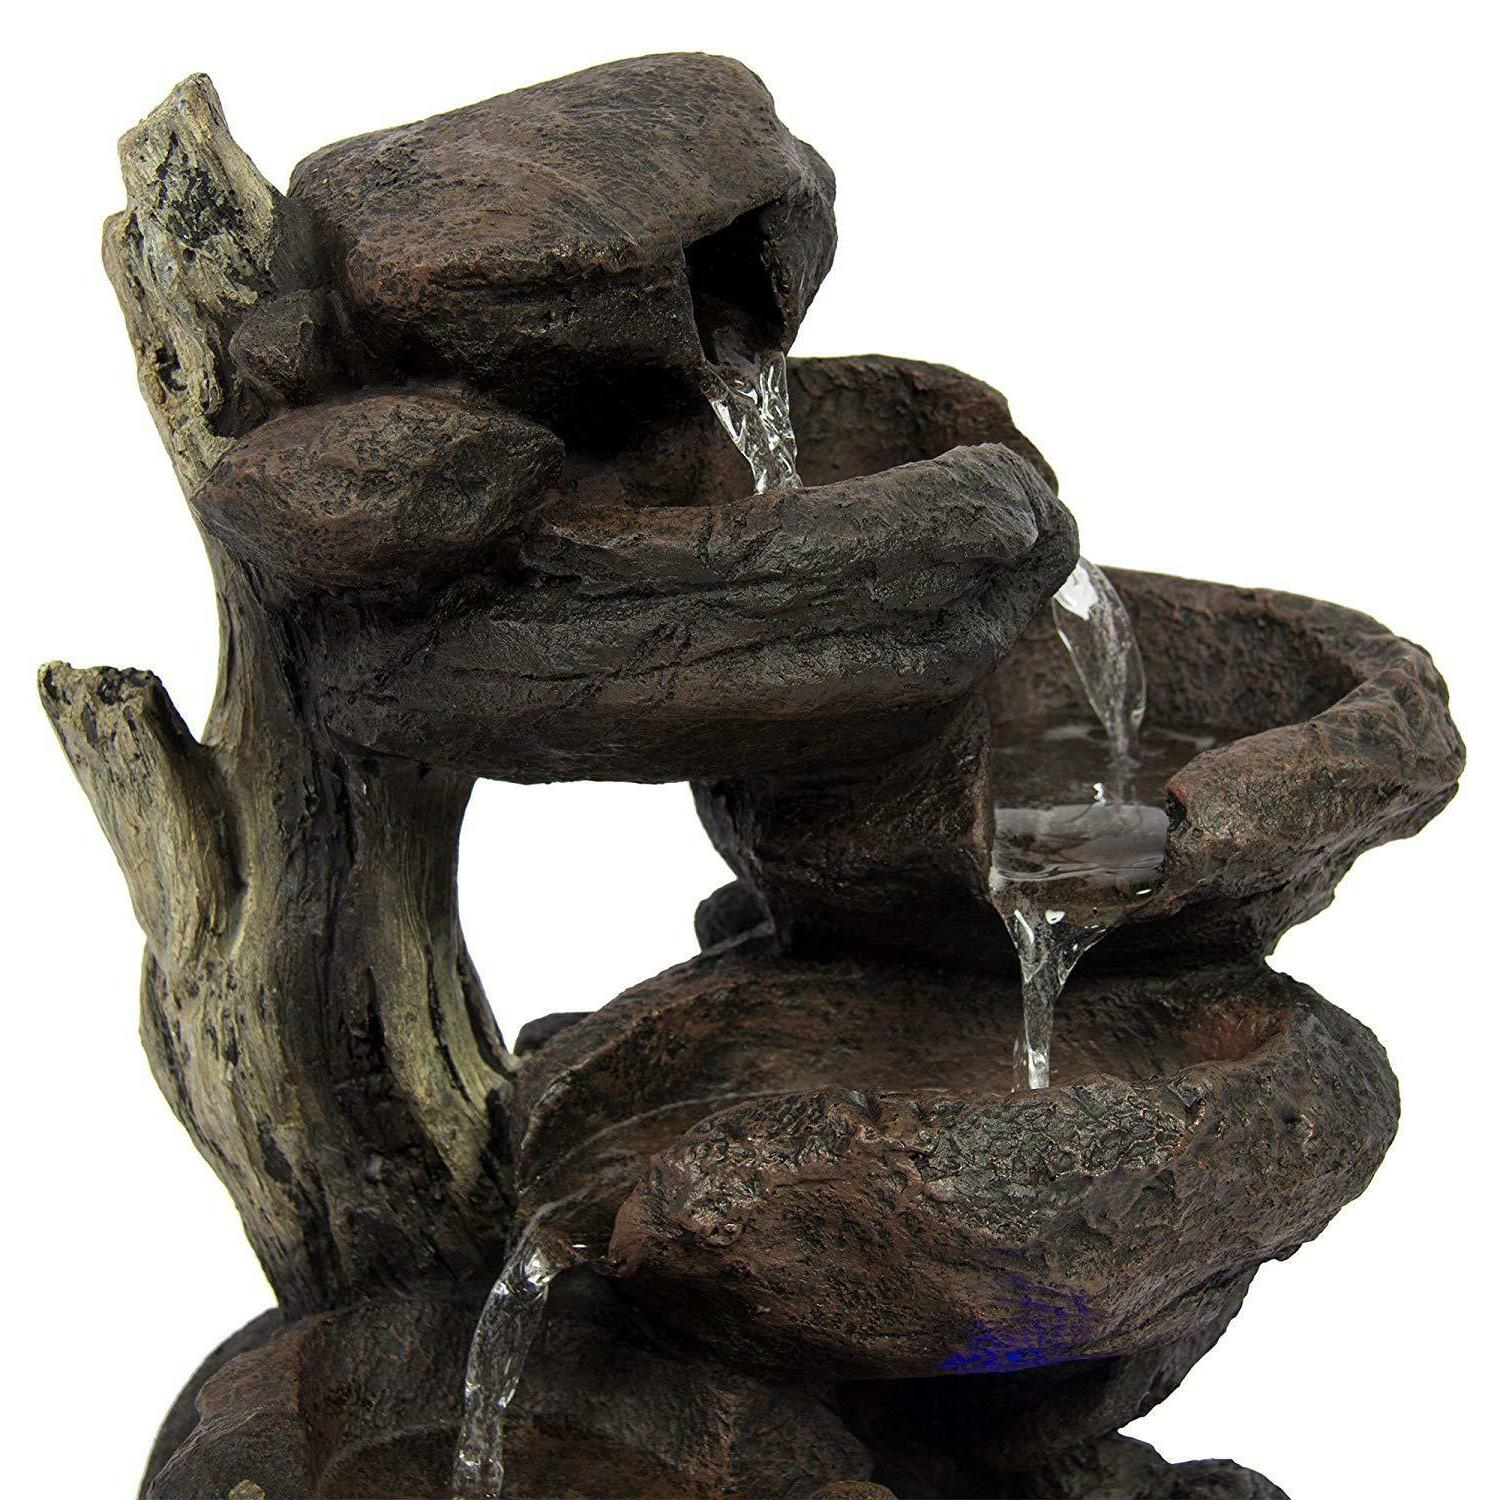 Patio Fountain With Light Water Garden Lawn Yard Decoration